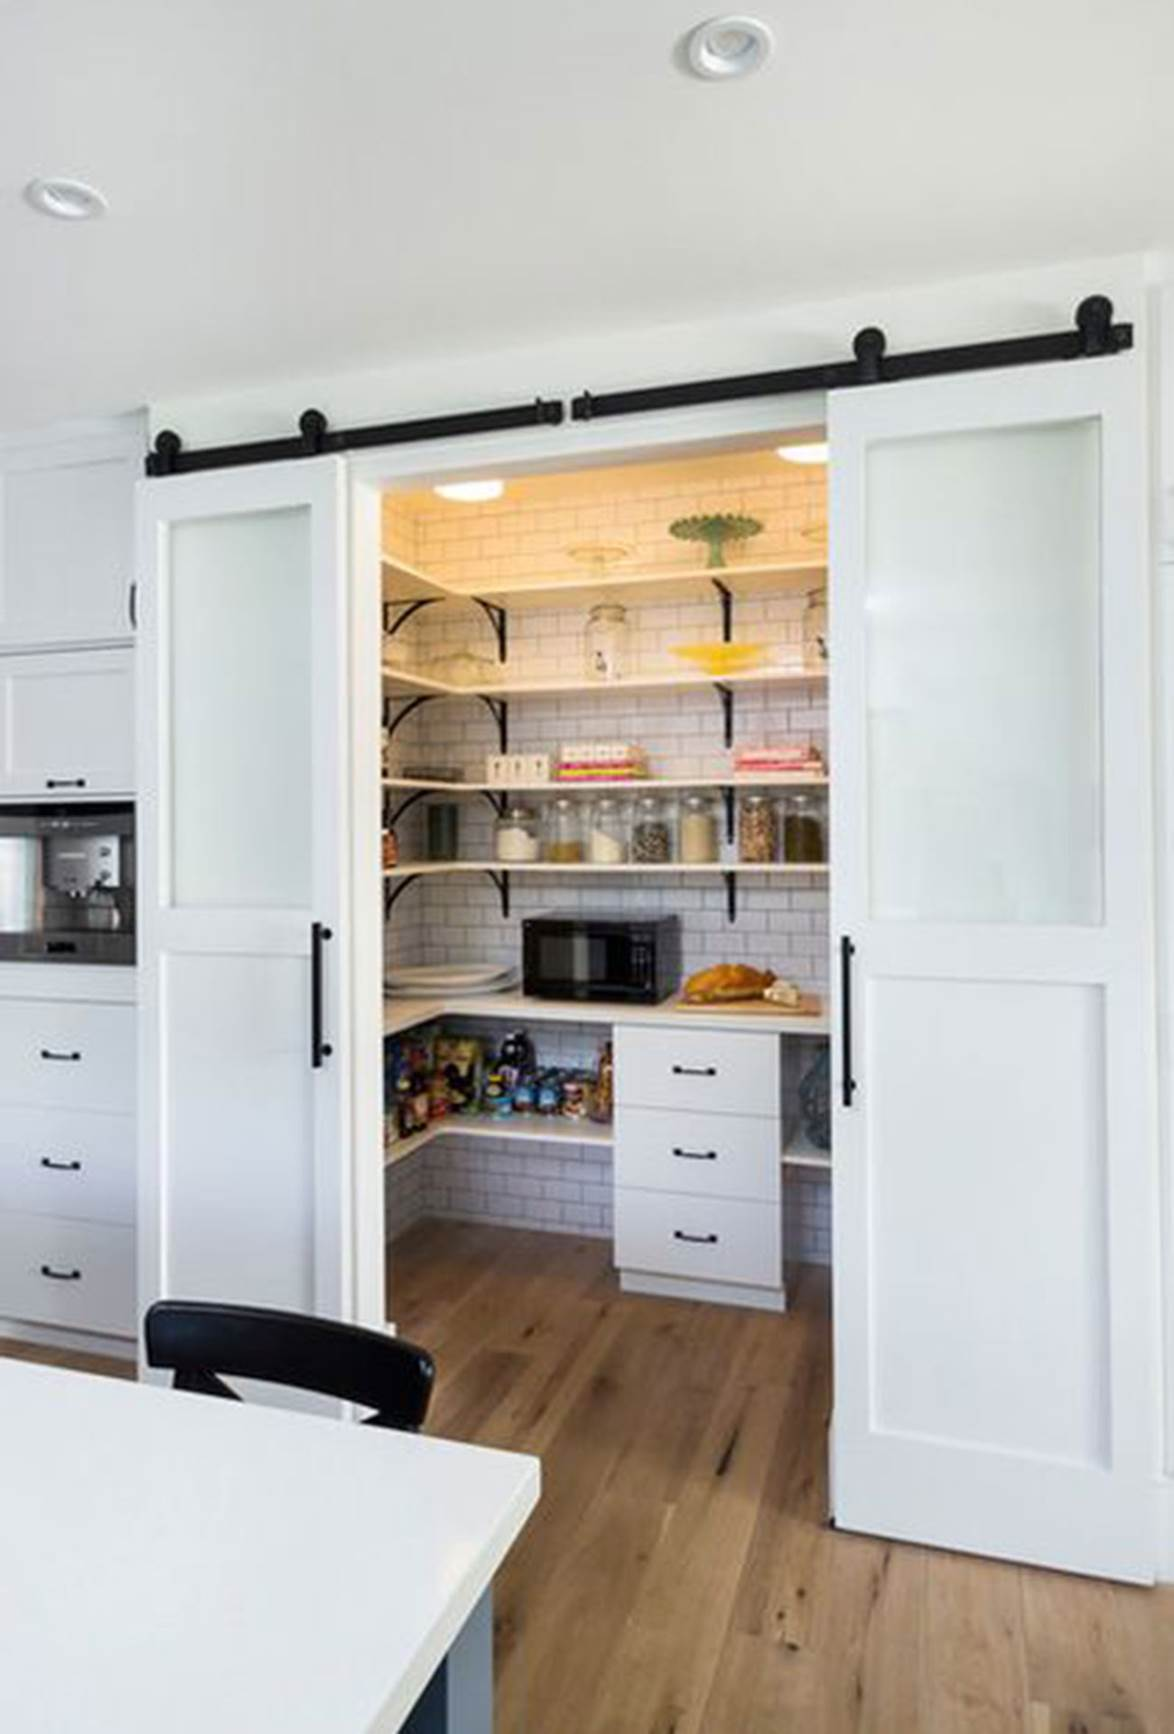 Sliding barn doors are perfect for a farmhouse style kitchen. Why not make them a double and it becomes a nice wide opening with easy access. |  source